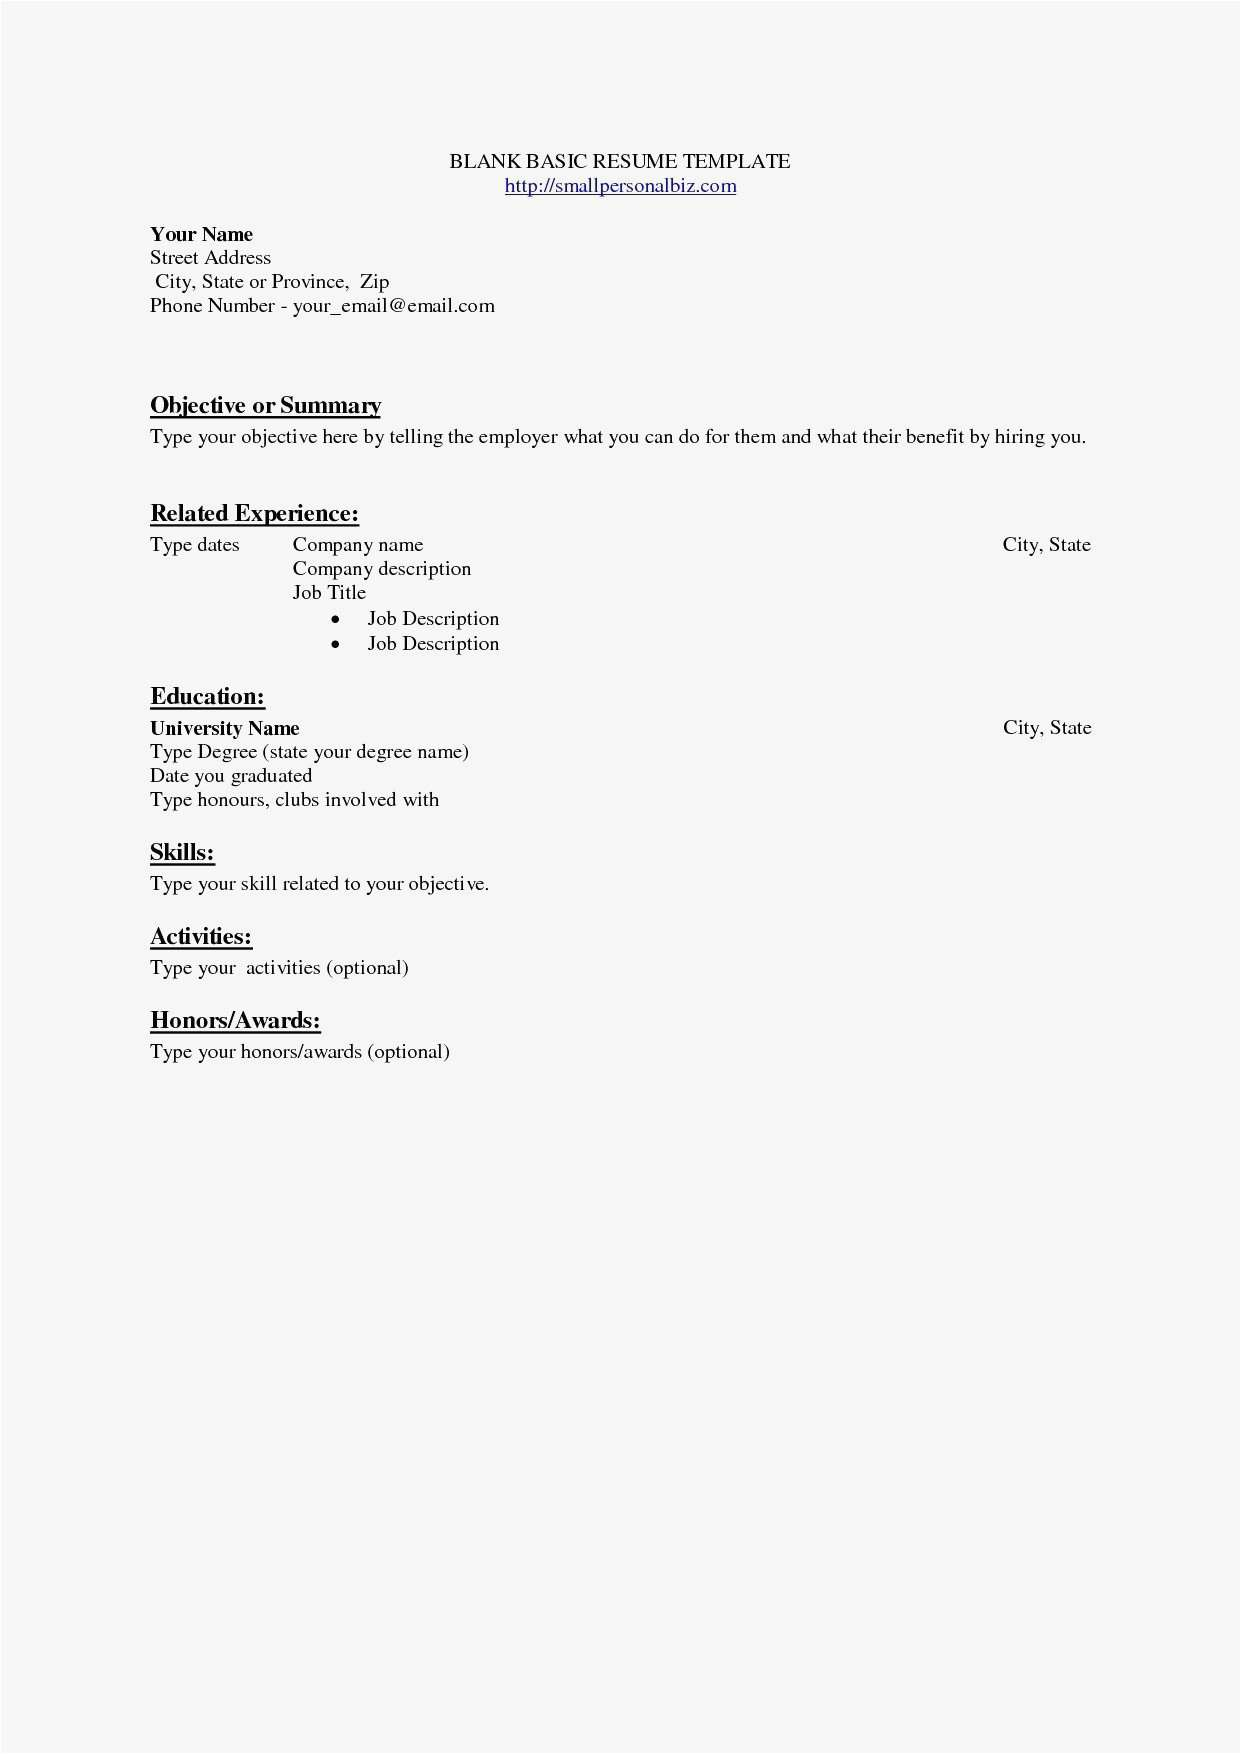 Emailable Resume Templates - How to Type A Letter format New Resume Cover Letter formatted Resume